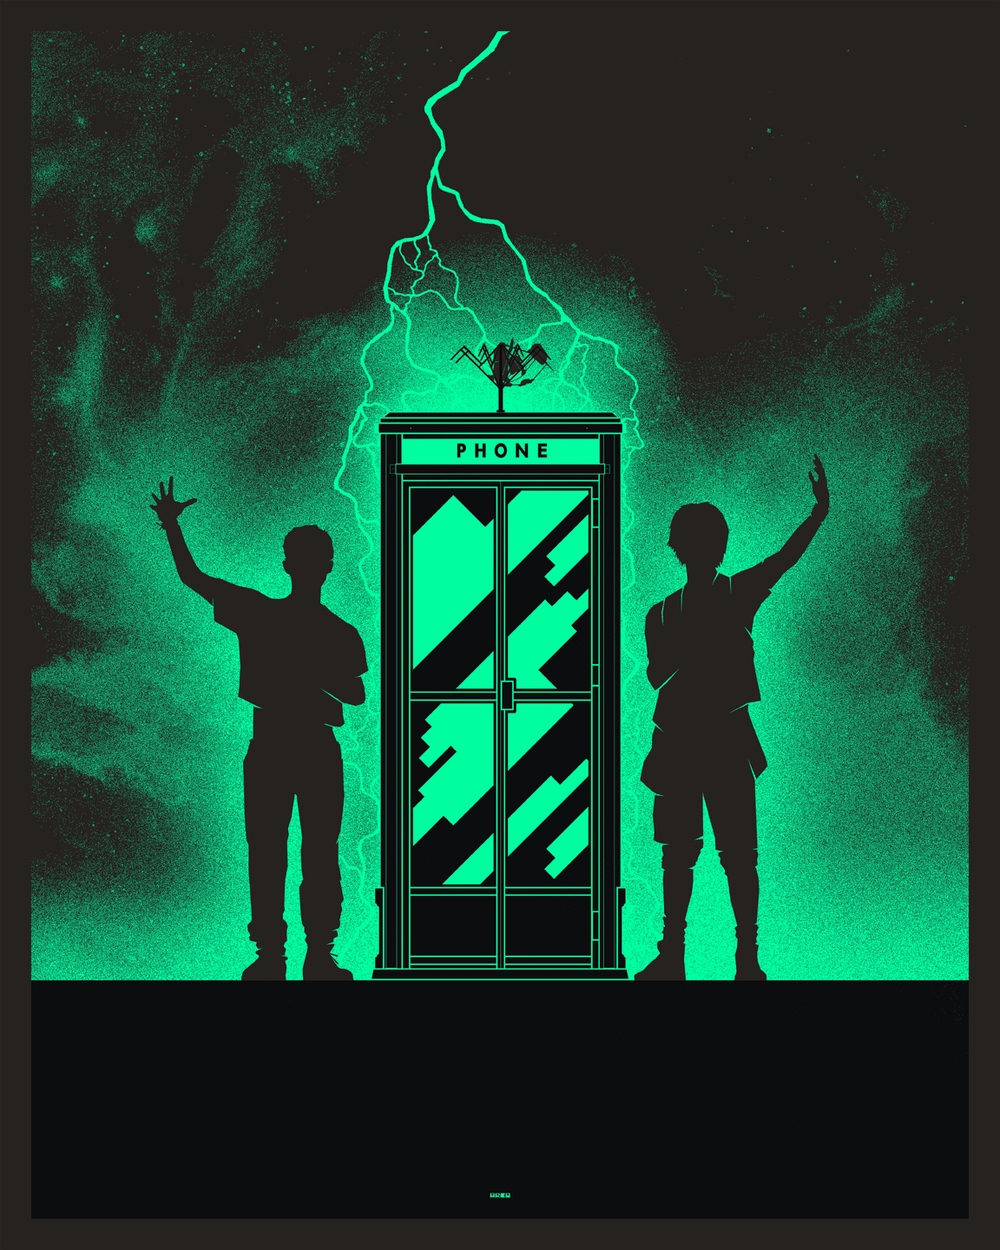 doctor-who-glow-in-the-dark-art-by-matt-ferguson4